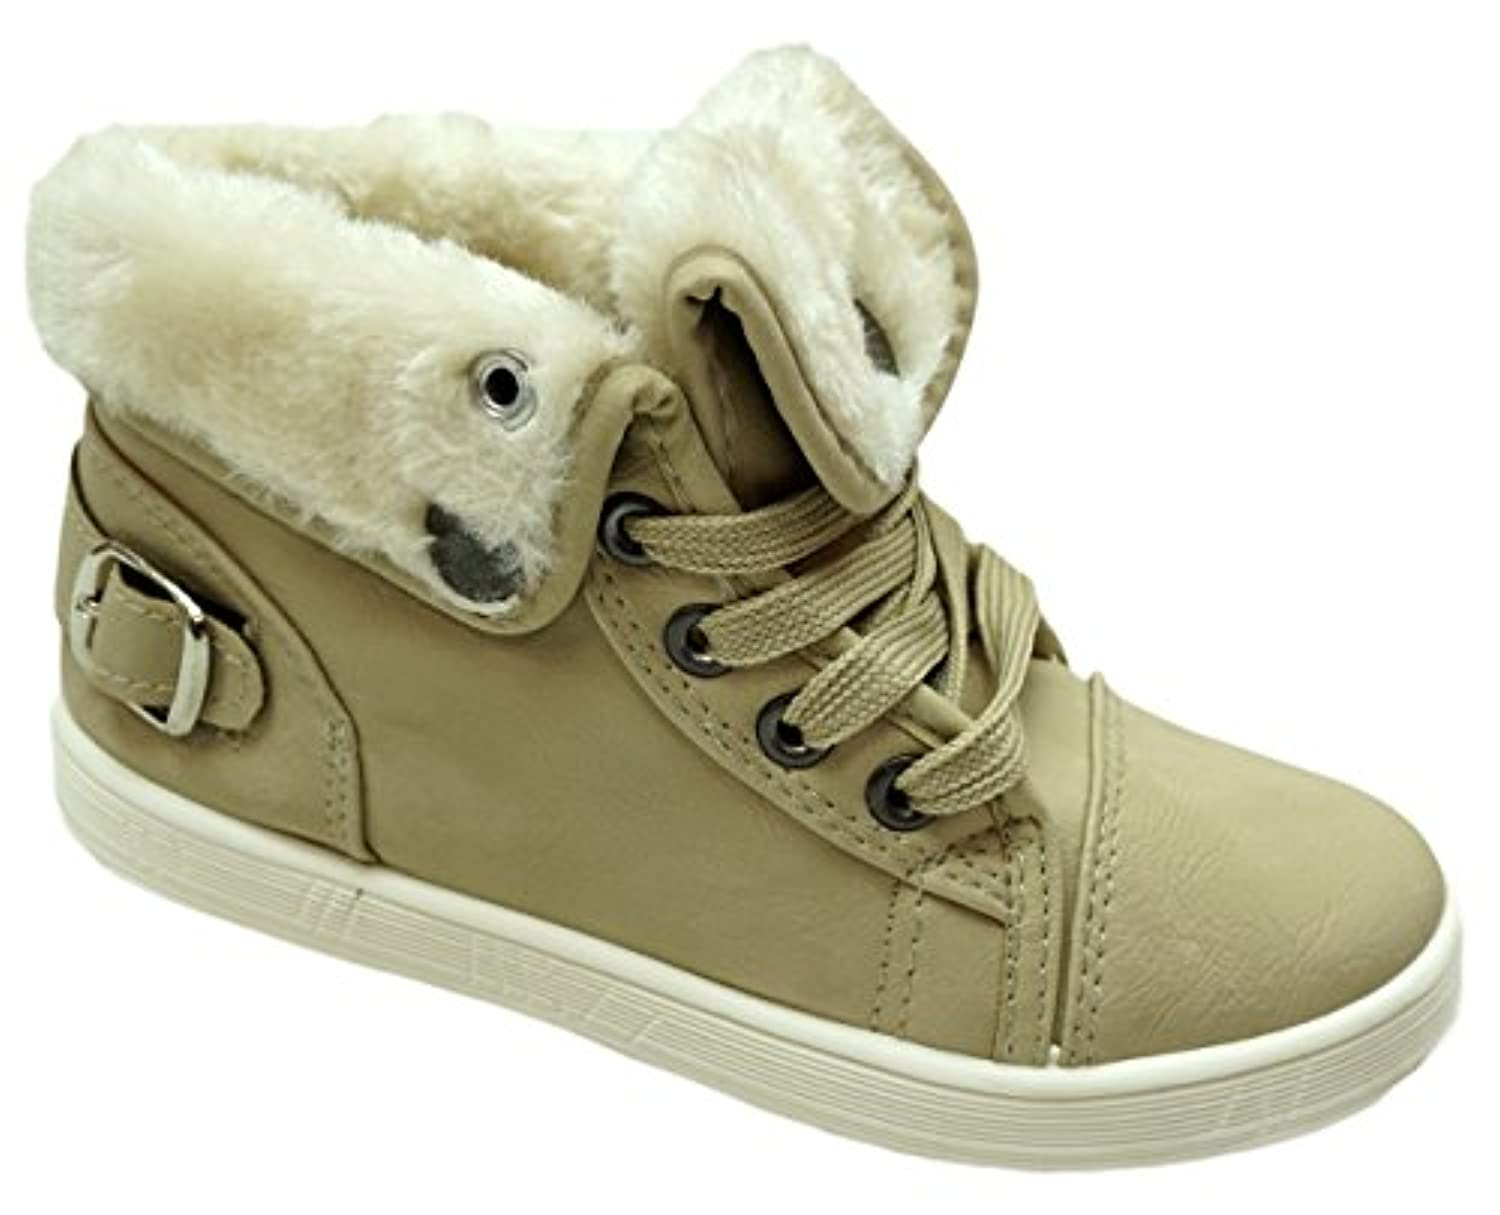 Boys Girls Faux Fur Buckle High Top Trainer Ankle Boot Shoes sizes EU 28-33 (UK 10-2)